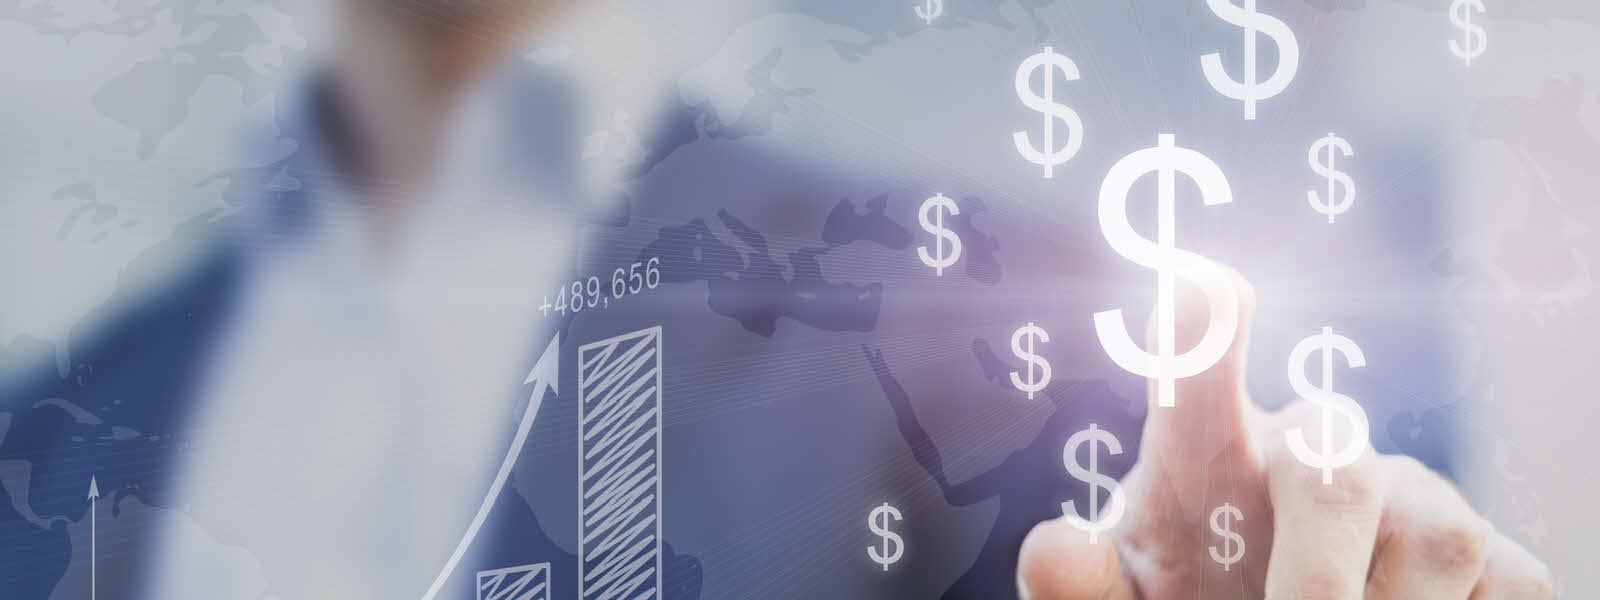 Channel Revenue Management and Special Pricing Done Accurately